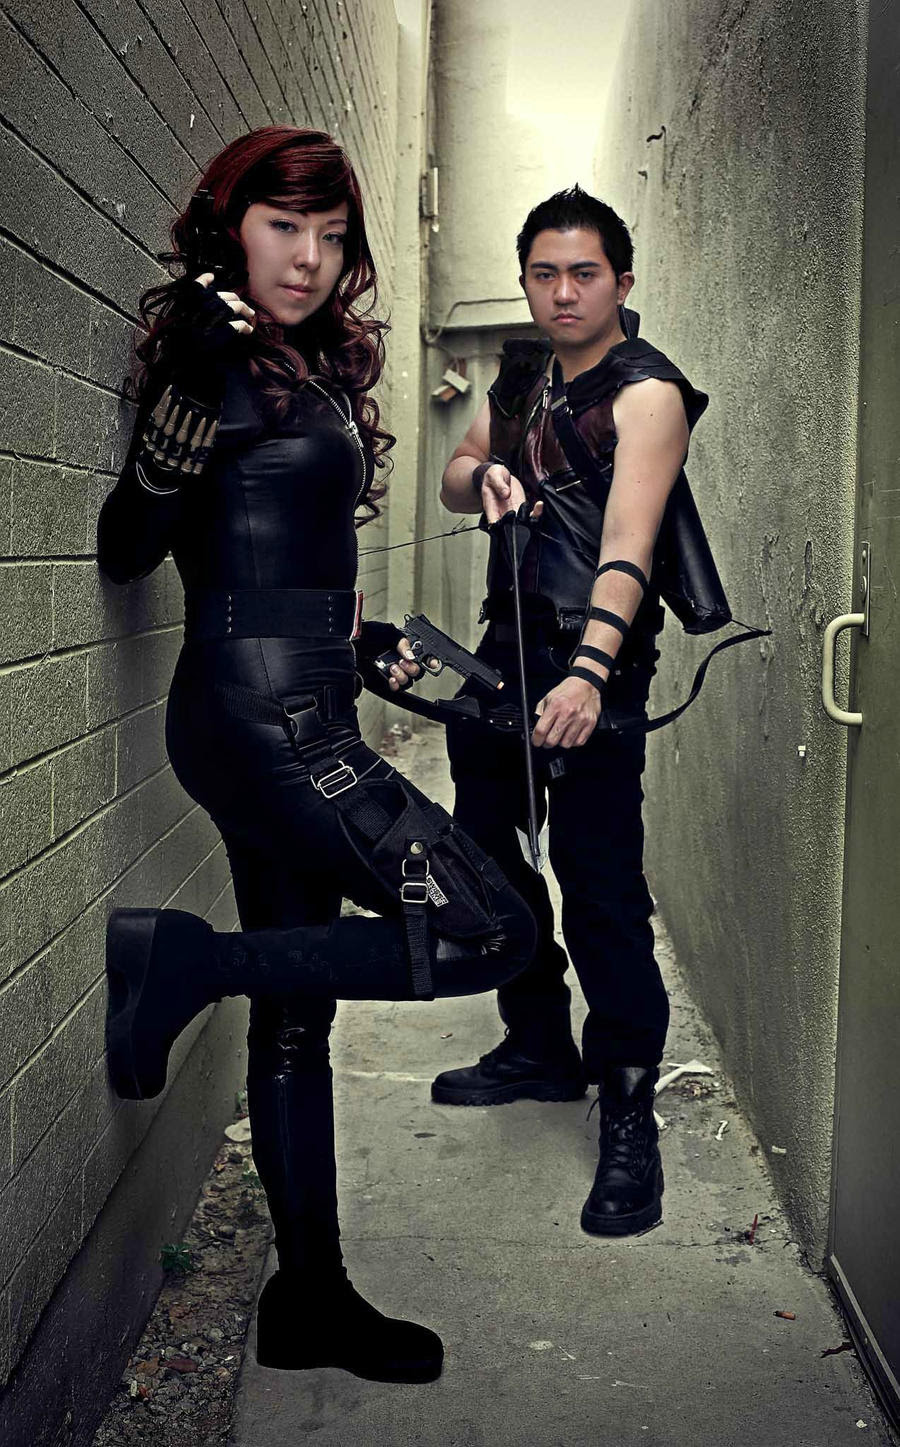 http://fc03.deviantart.net/fs70/i/2013/009/8/4/blackhawk____black_widow_and_hawkeye_cosplay_by_oniakako-d5qyv9g.jpg